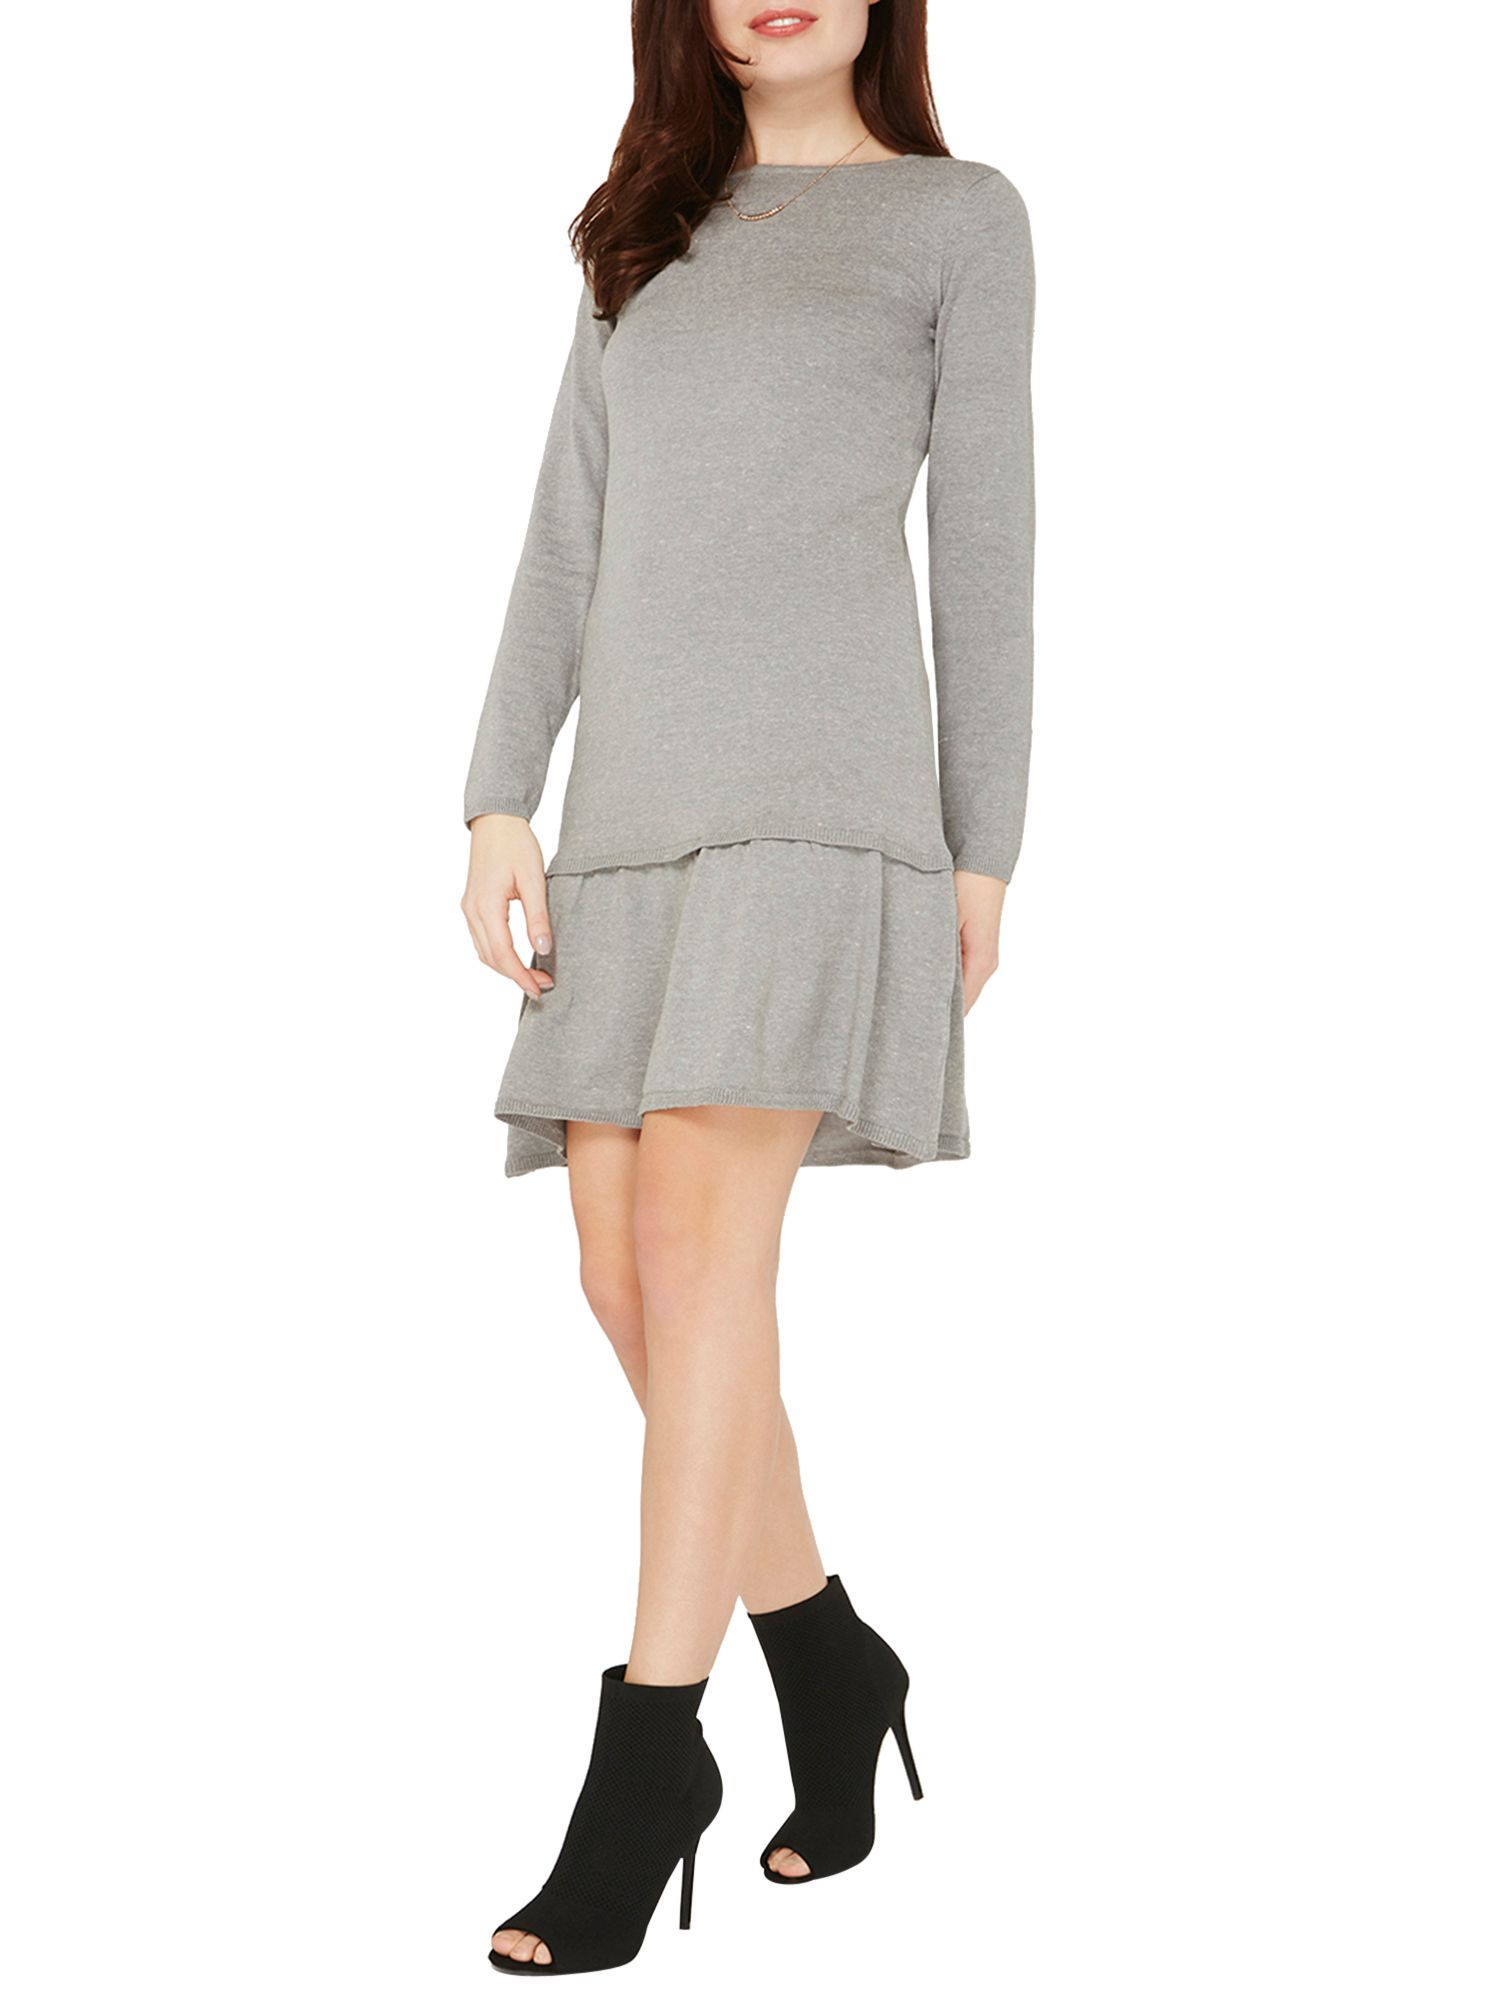 Dressing Perkin Perfect Dorothy Perkins Frill Hem Knitted Dress Dorothy